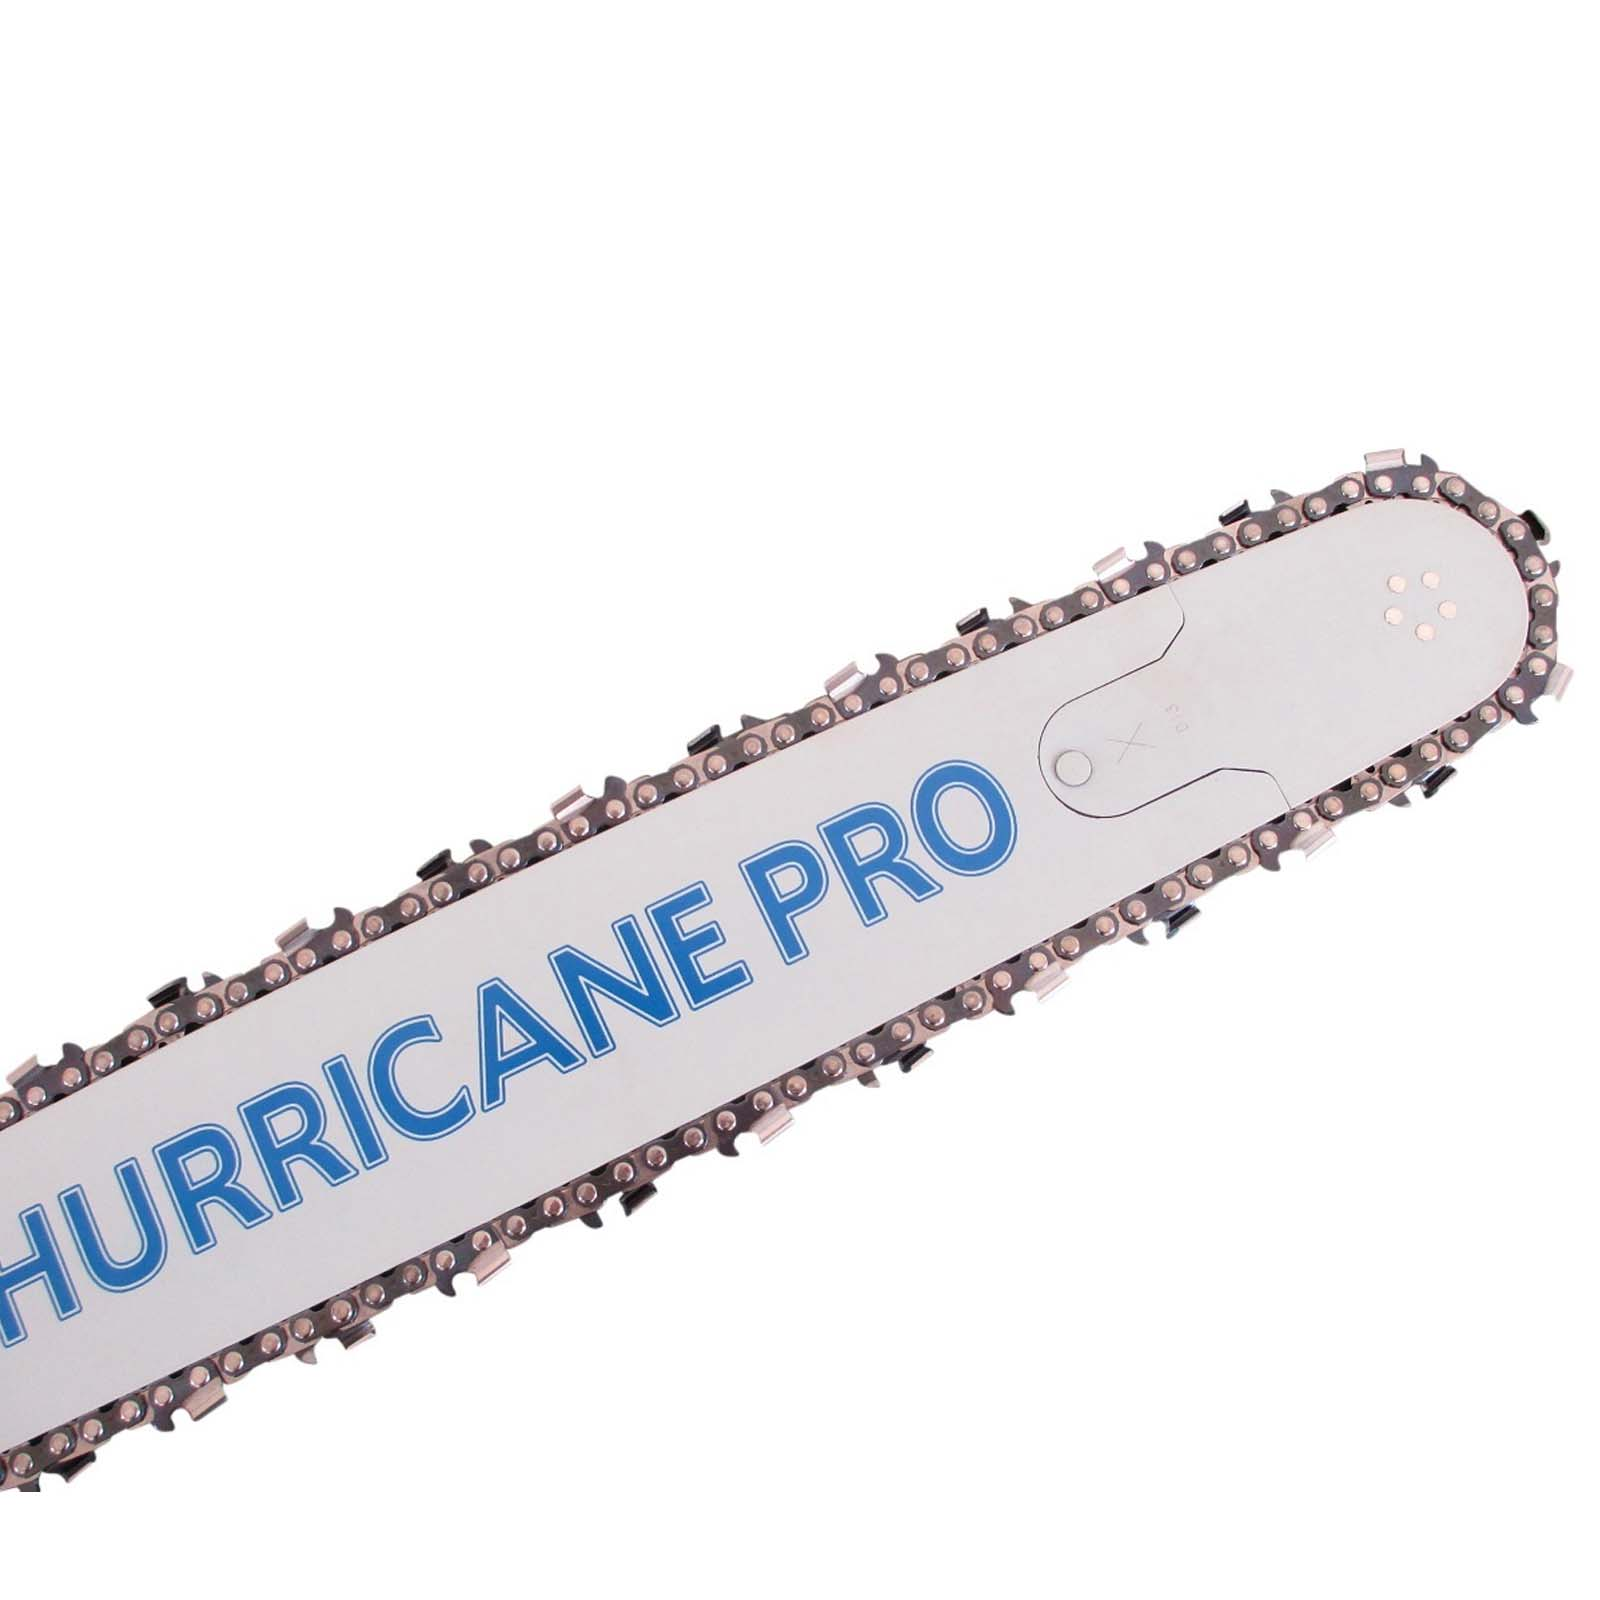 "20"" Hurricane Pro Chainsaw Chain Guide Bar & Chain for 404"" Stihl MS660 MS661"